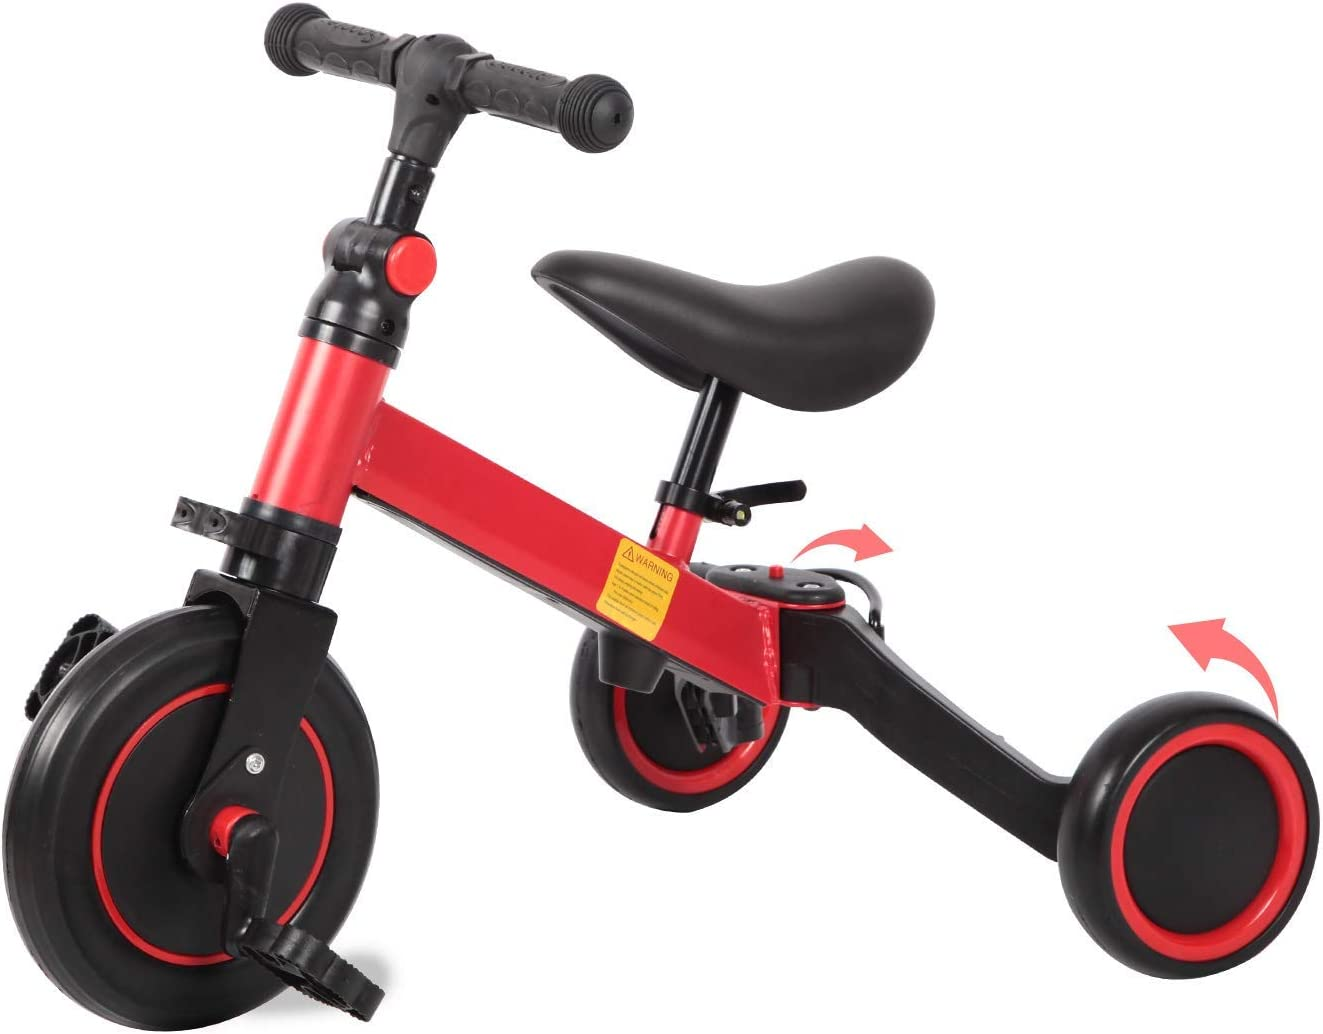 Diroan Kids Tricycles for 1-3 Years Old Boys Girls 3 Wheel Toddler Trike Baby Balance Bikes with Removable Pedal and Adjustable Seat Red